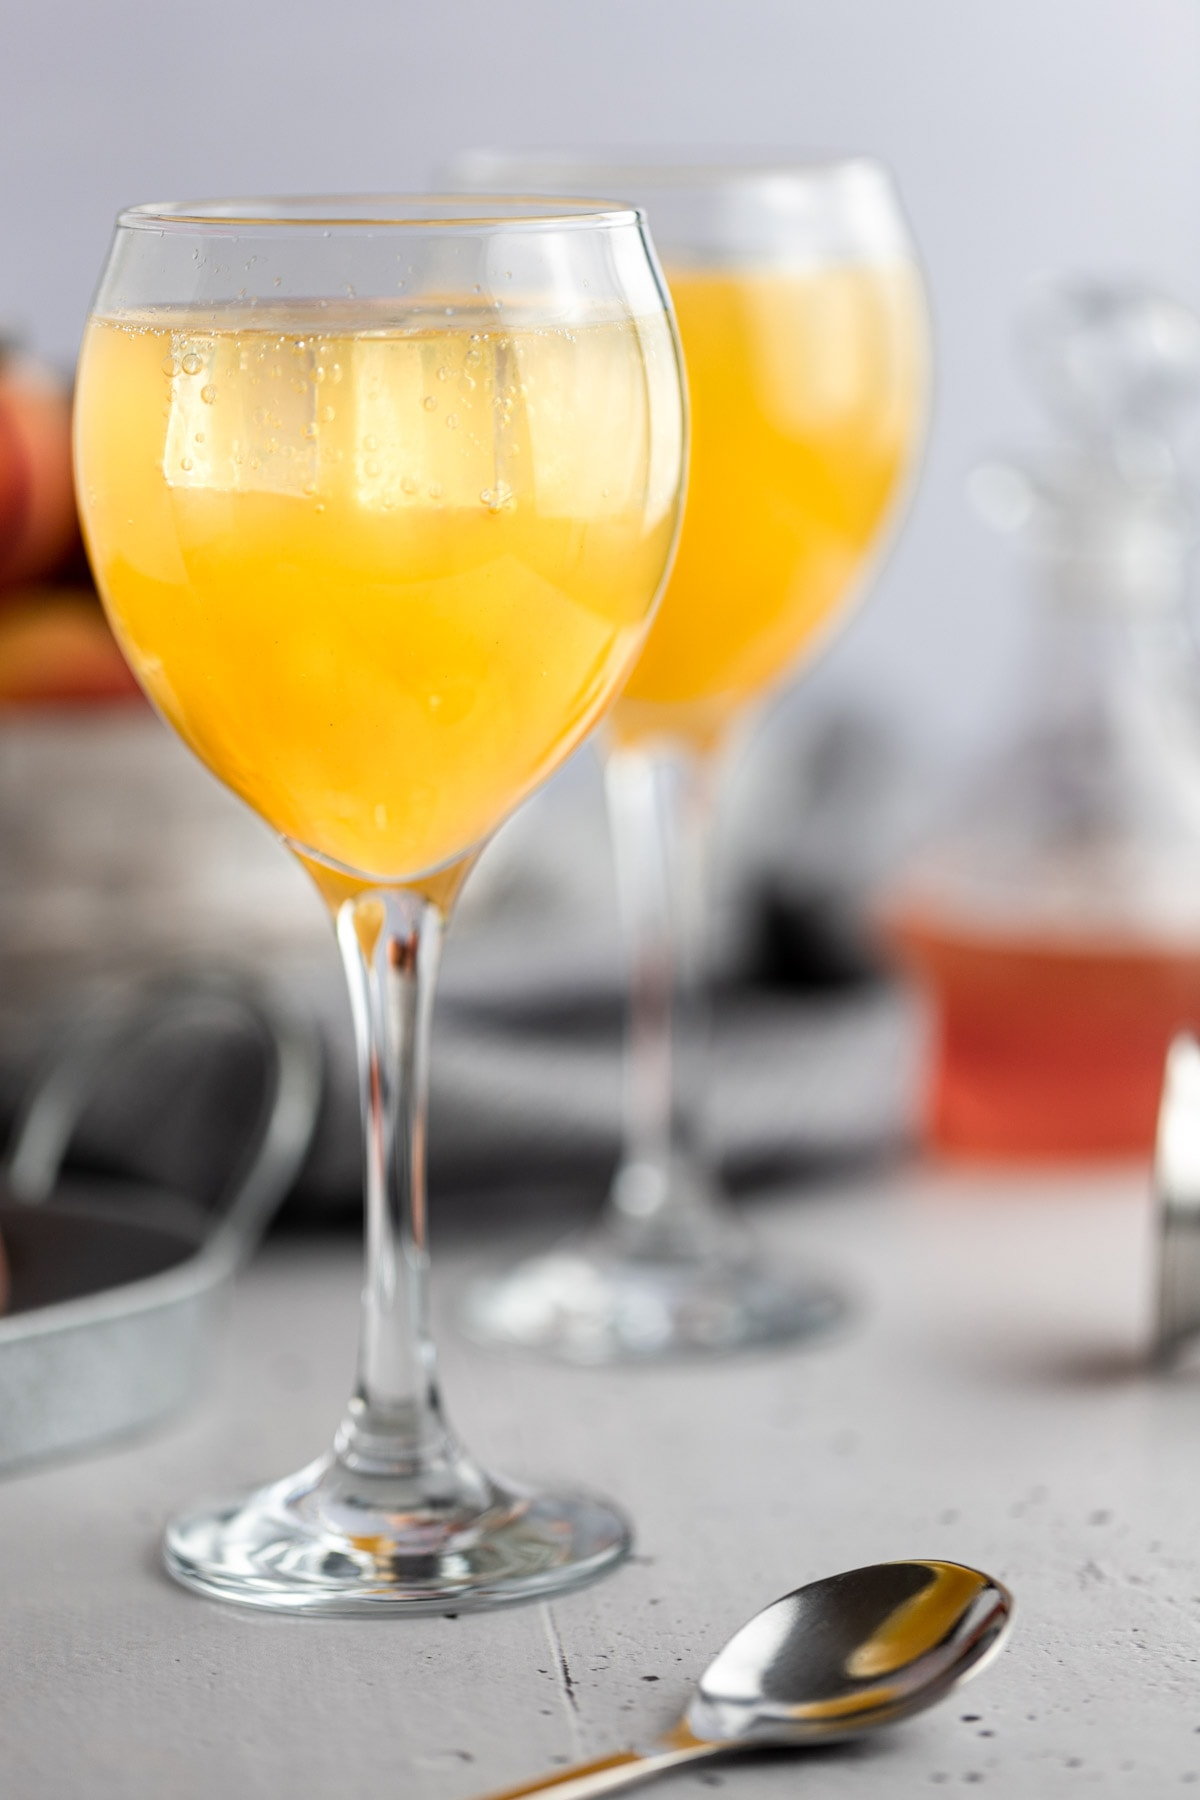 Up close view of an orangey-yellow gin peach cocktail, next to a spoon and fresh peaches with a grey background.